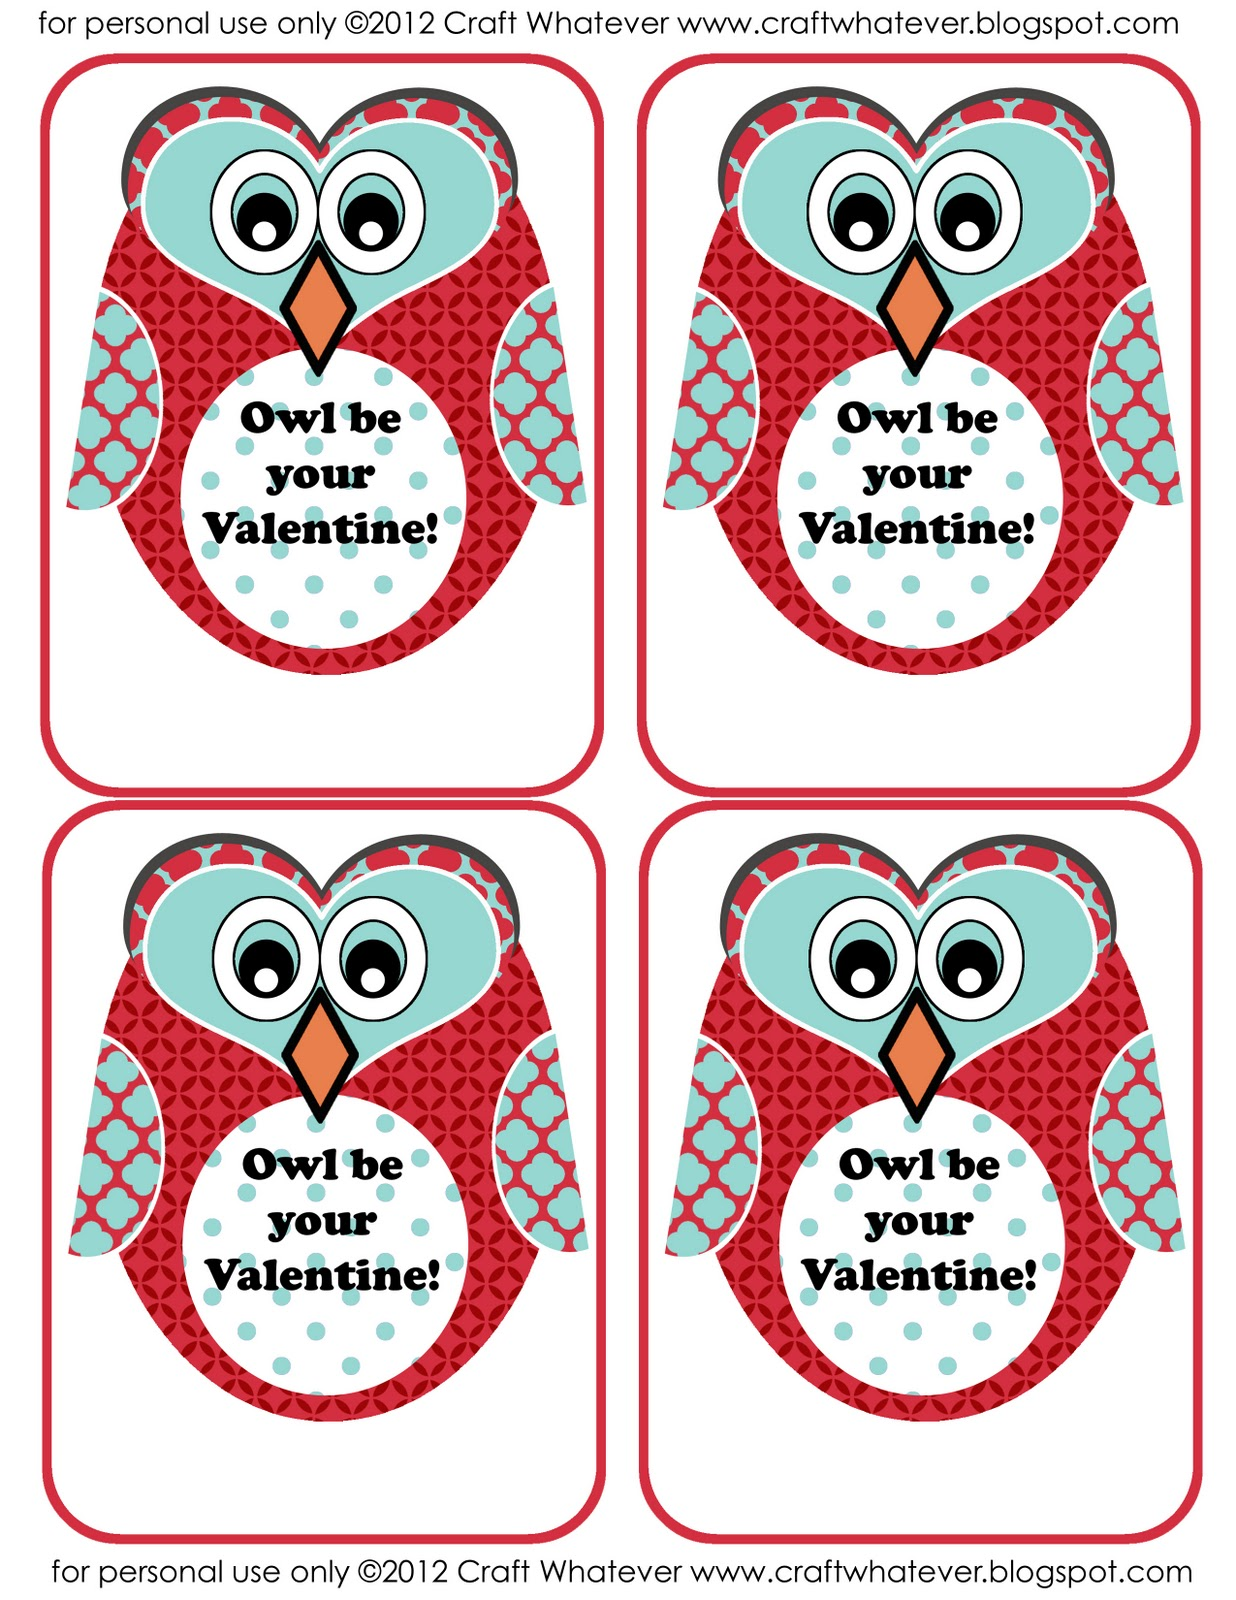 Craft Whatever Printable Owl Valentines